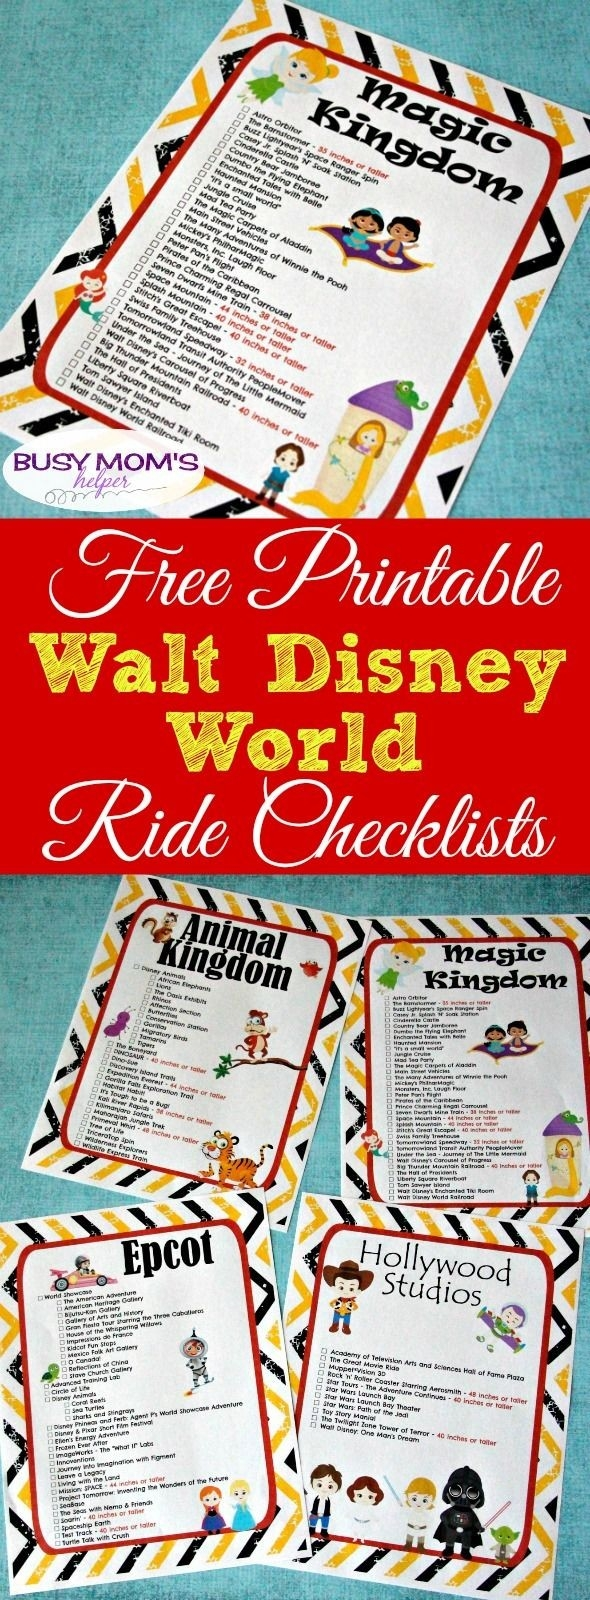 Free Printable Walt Disney World Ride Checklists | Walt  Free Disney World Attraction Checklist 2020